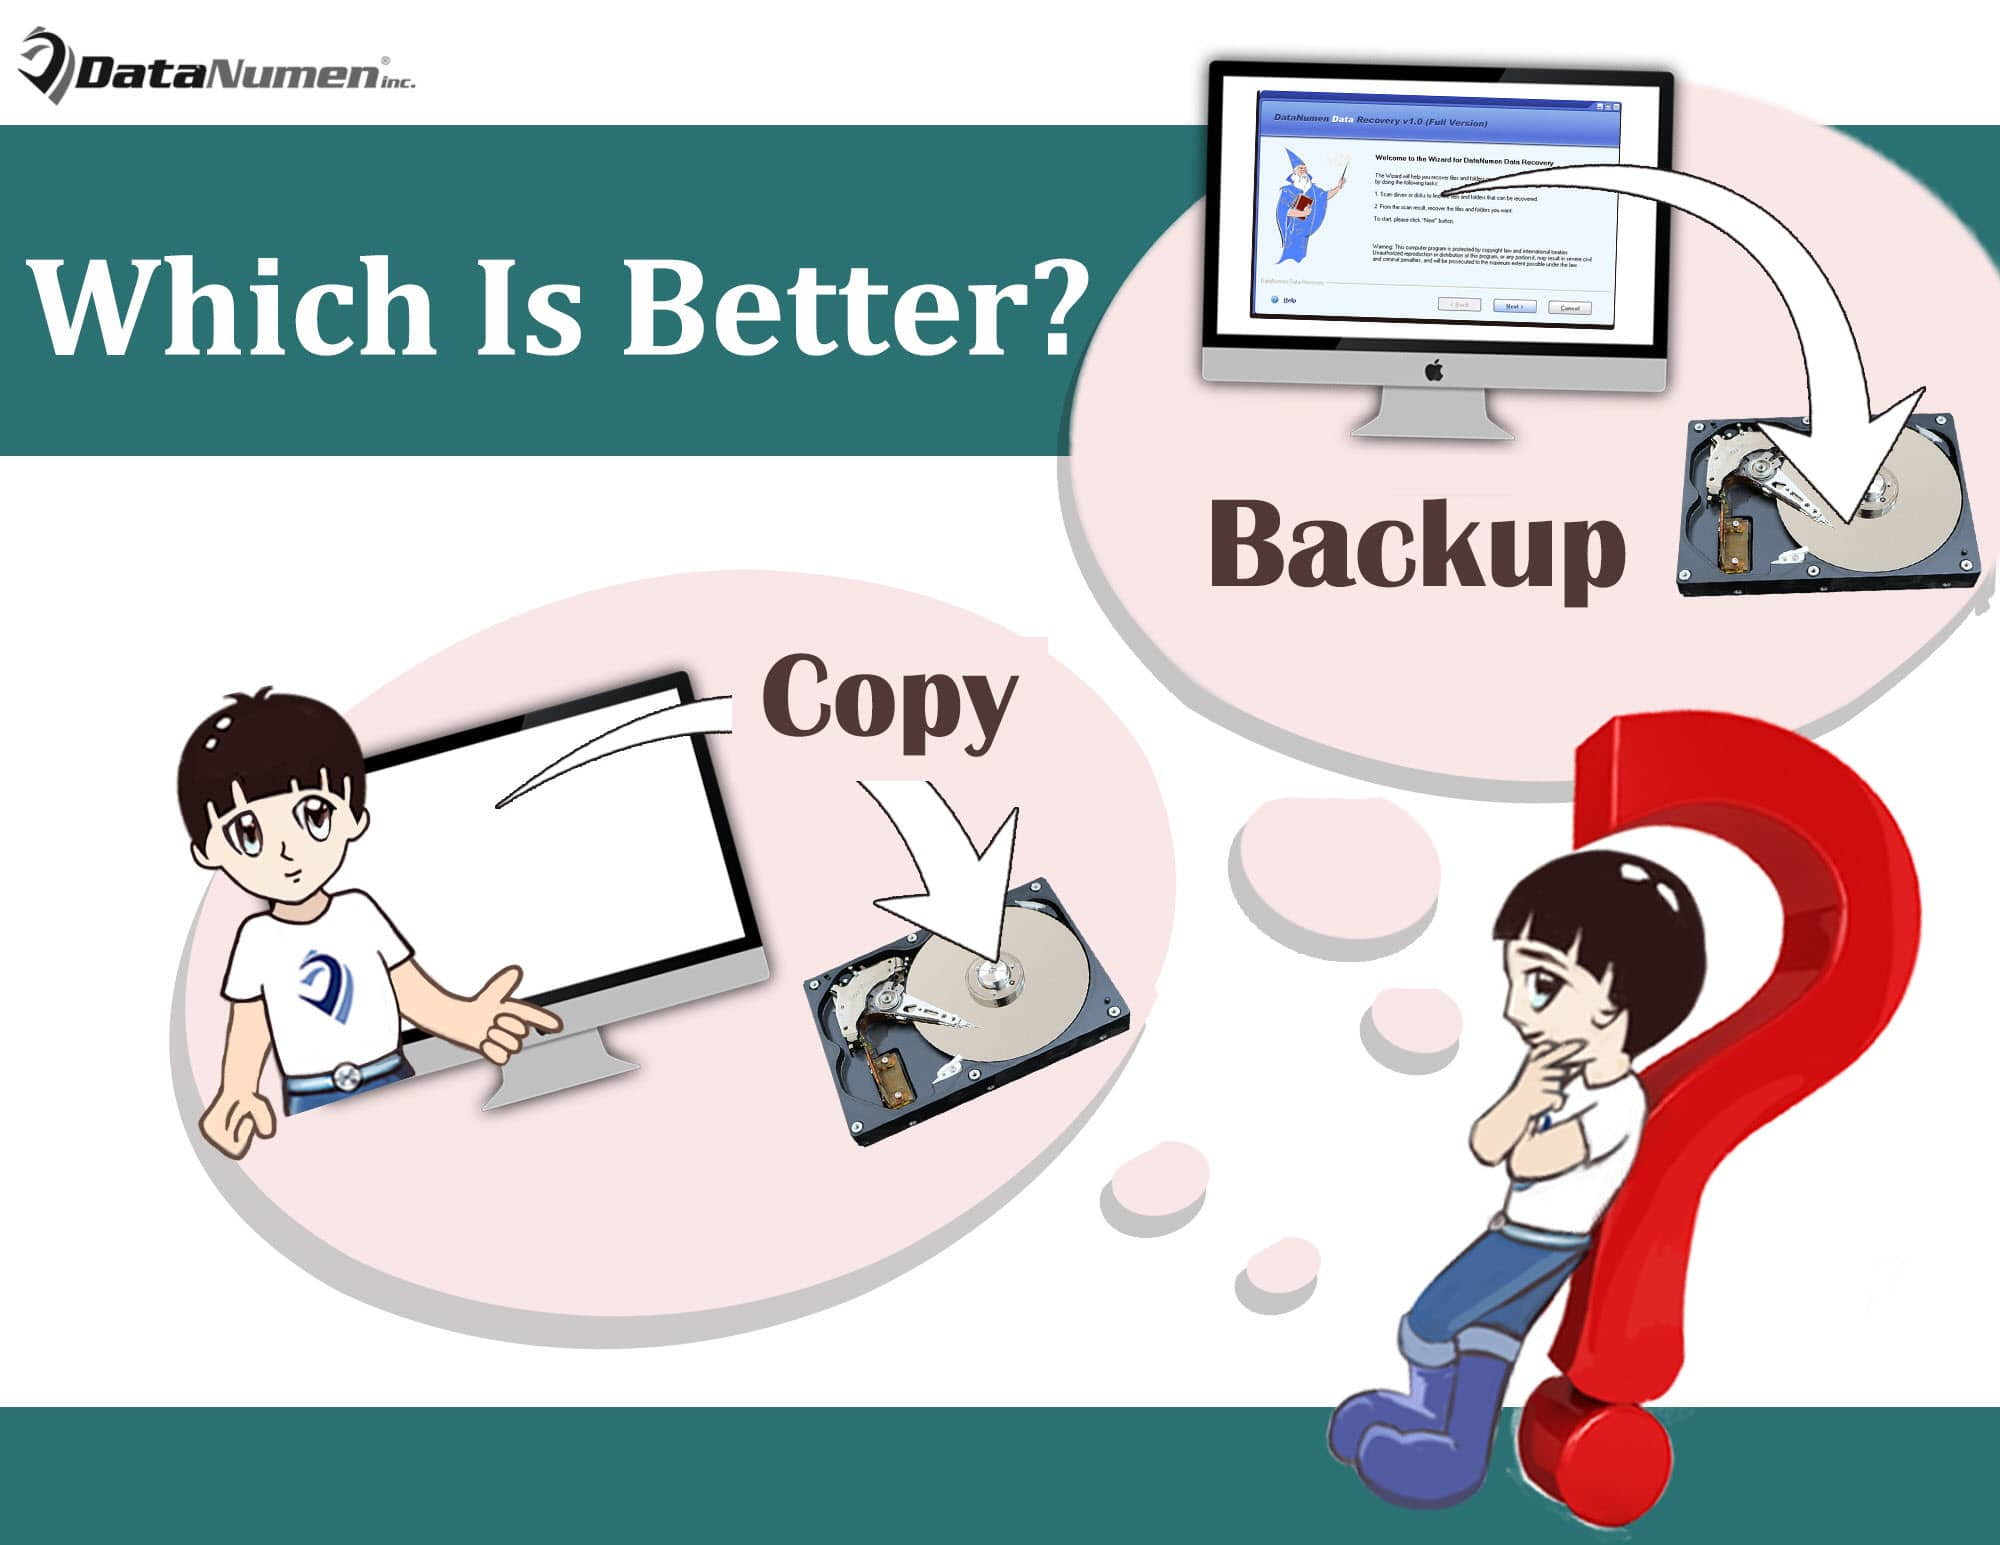 Copy vs Backup: Which Is Better for Backing up Your PC?